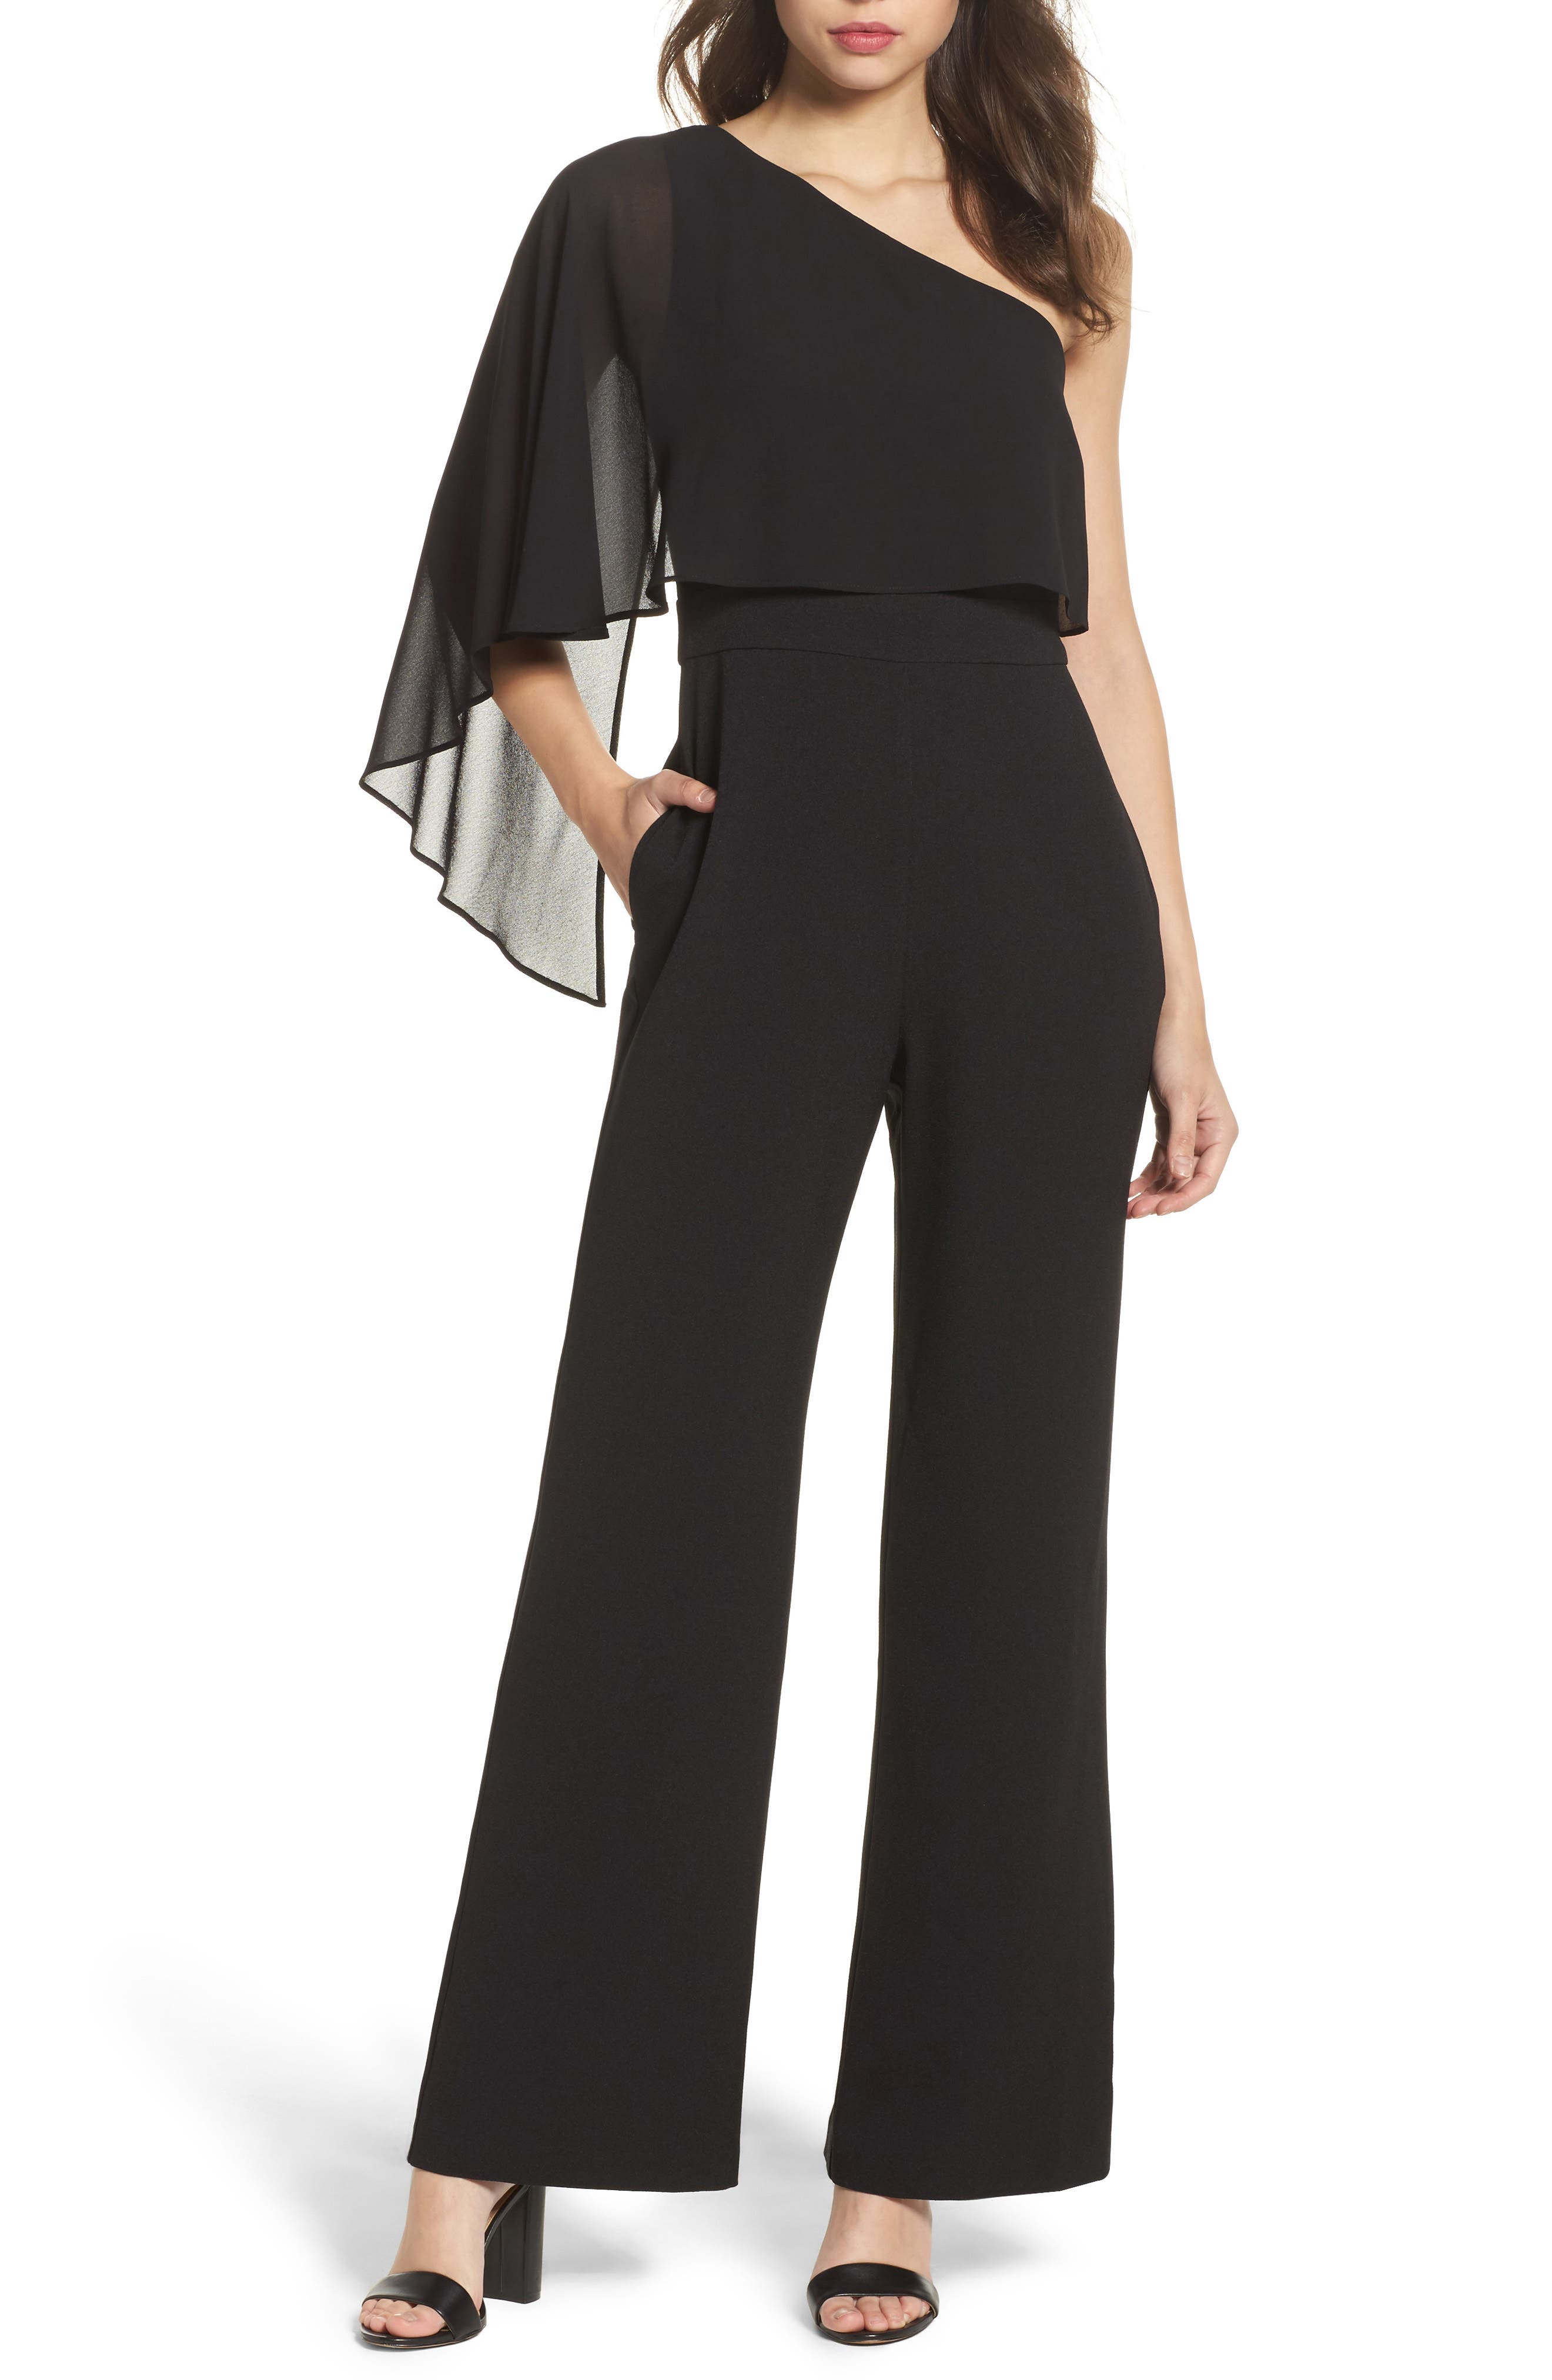 Alternate Image 1 Selected - Vince Camuto Cape Overlay One-Shoulder Jumpsuit